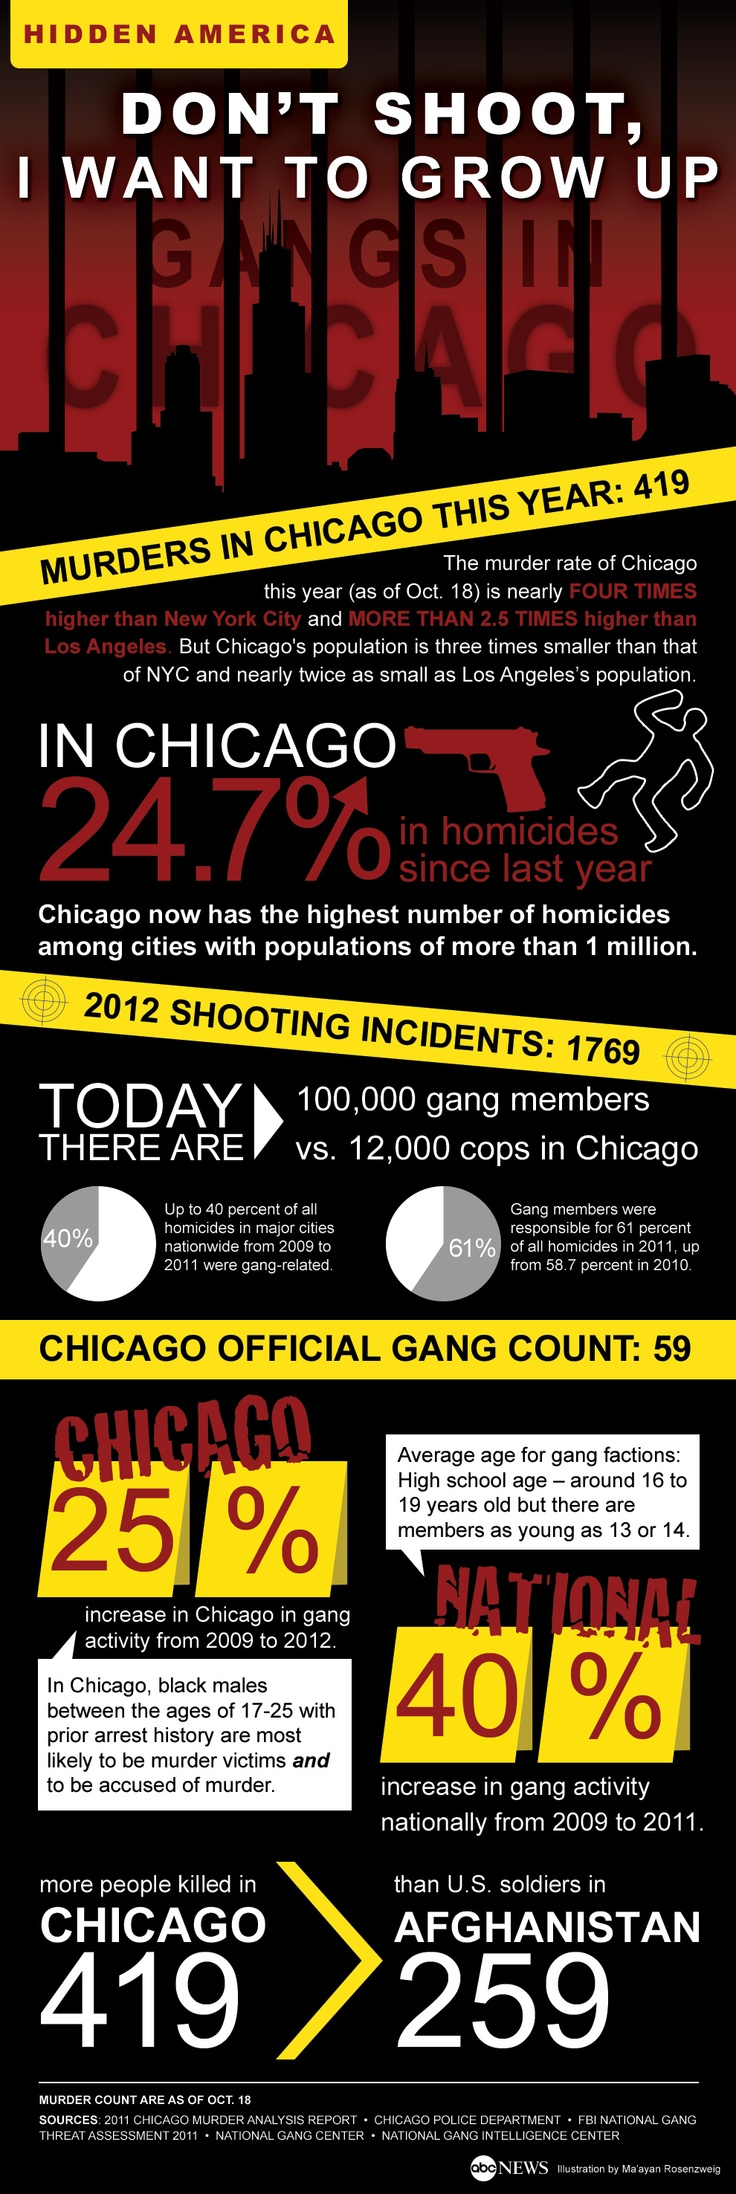 I think this graphic puts gang violence in Chicago into perspective. 419 murders occurred in the city versus the 259 murders of US soldiers in Afghanistan from the war. Chicago needs to put more emphasis on gang violence prevention in order for these numbers to go down.